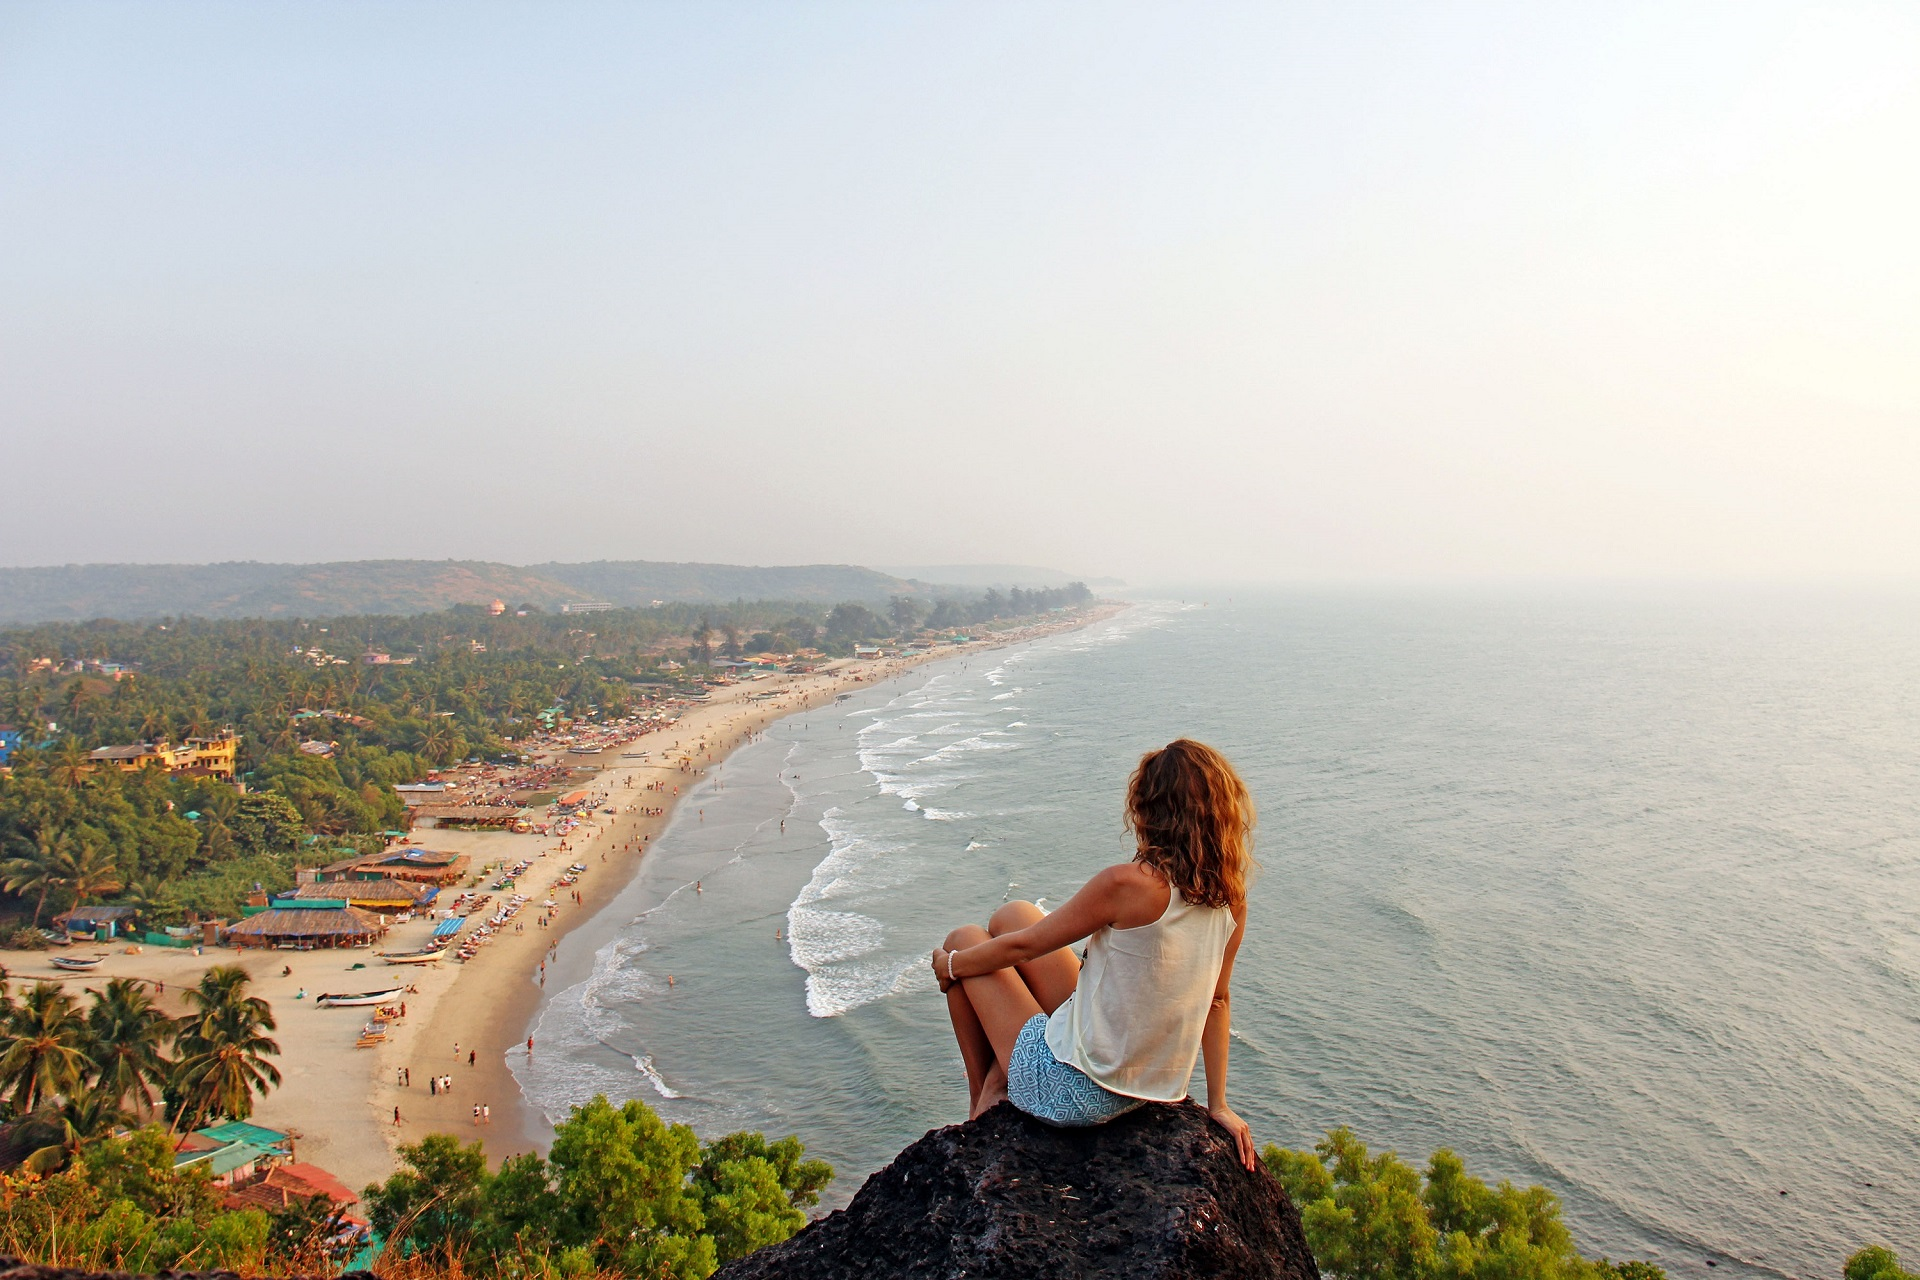 A young girl with blond hair sits on top of a mountain and looks at the sea and beach of the village of Arambol, Goa, India. The beach from a height. Relax and relax alone with nature